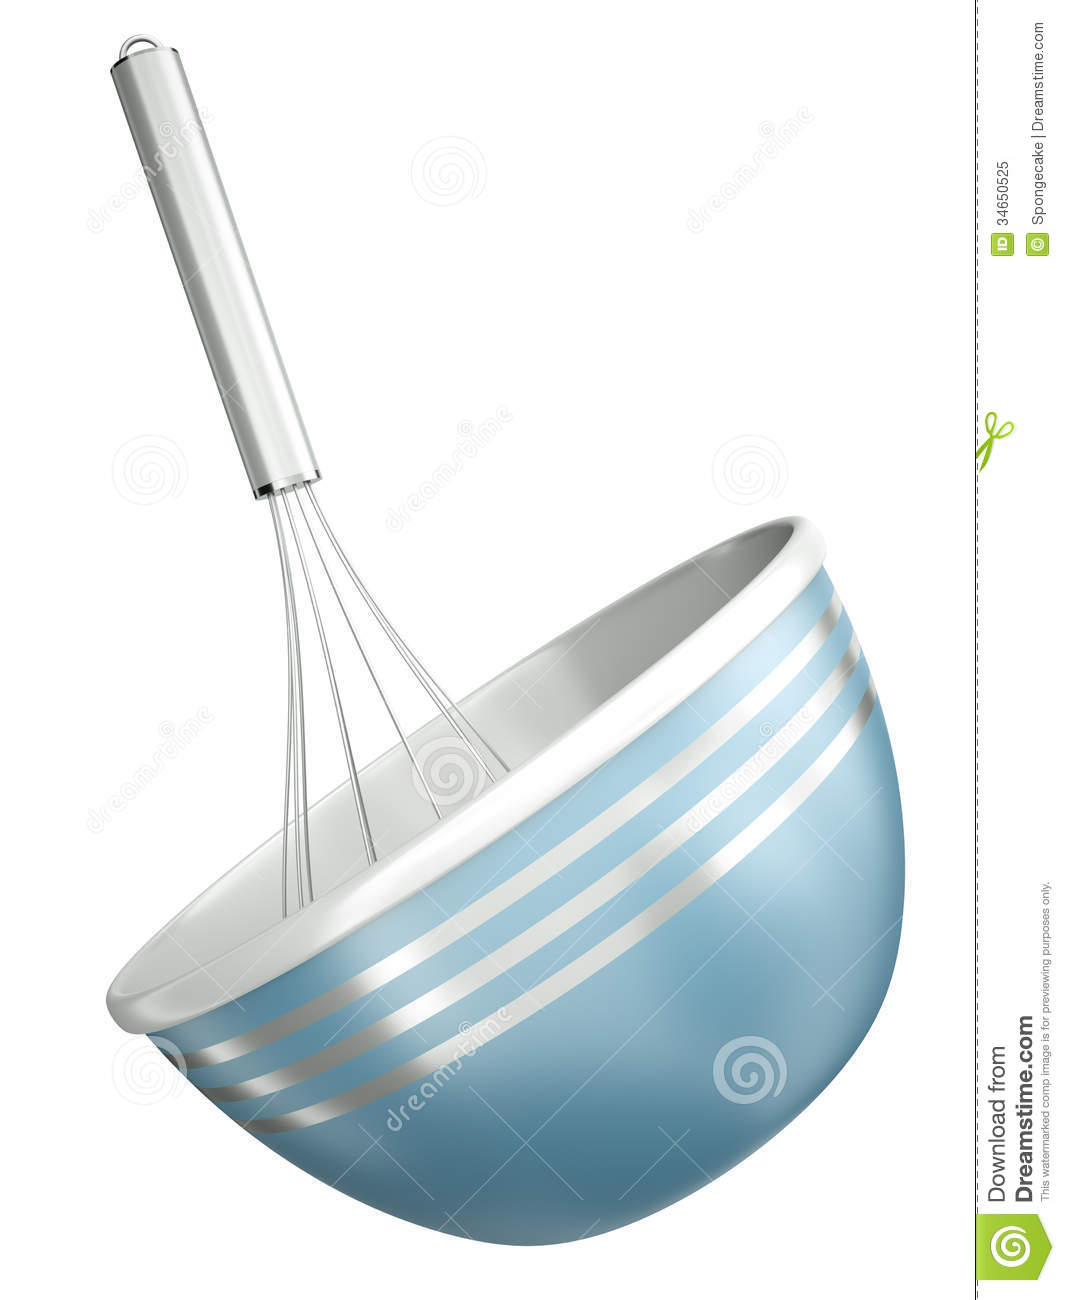 Wire whisk Illustrations and Clipart 1139 Wire whisk